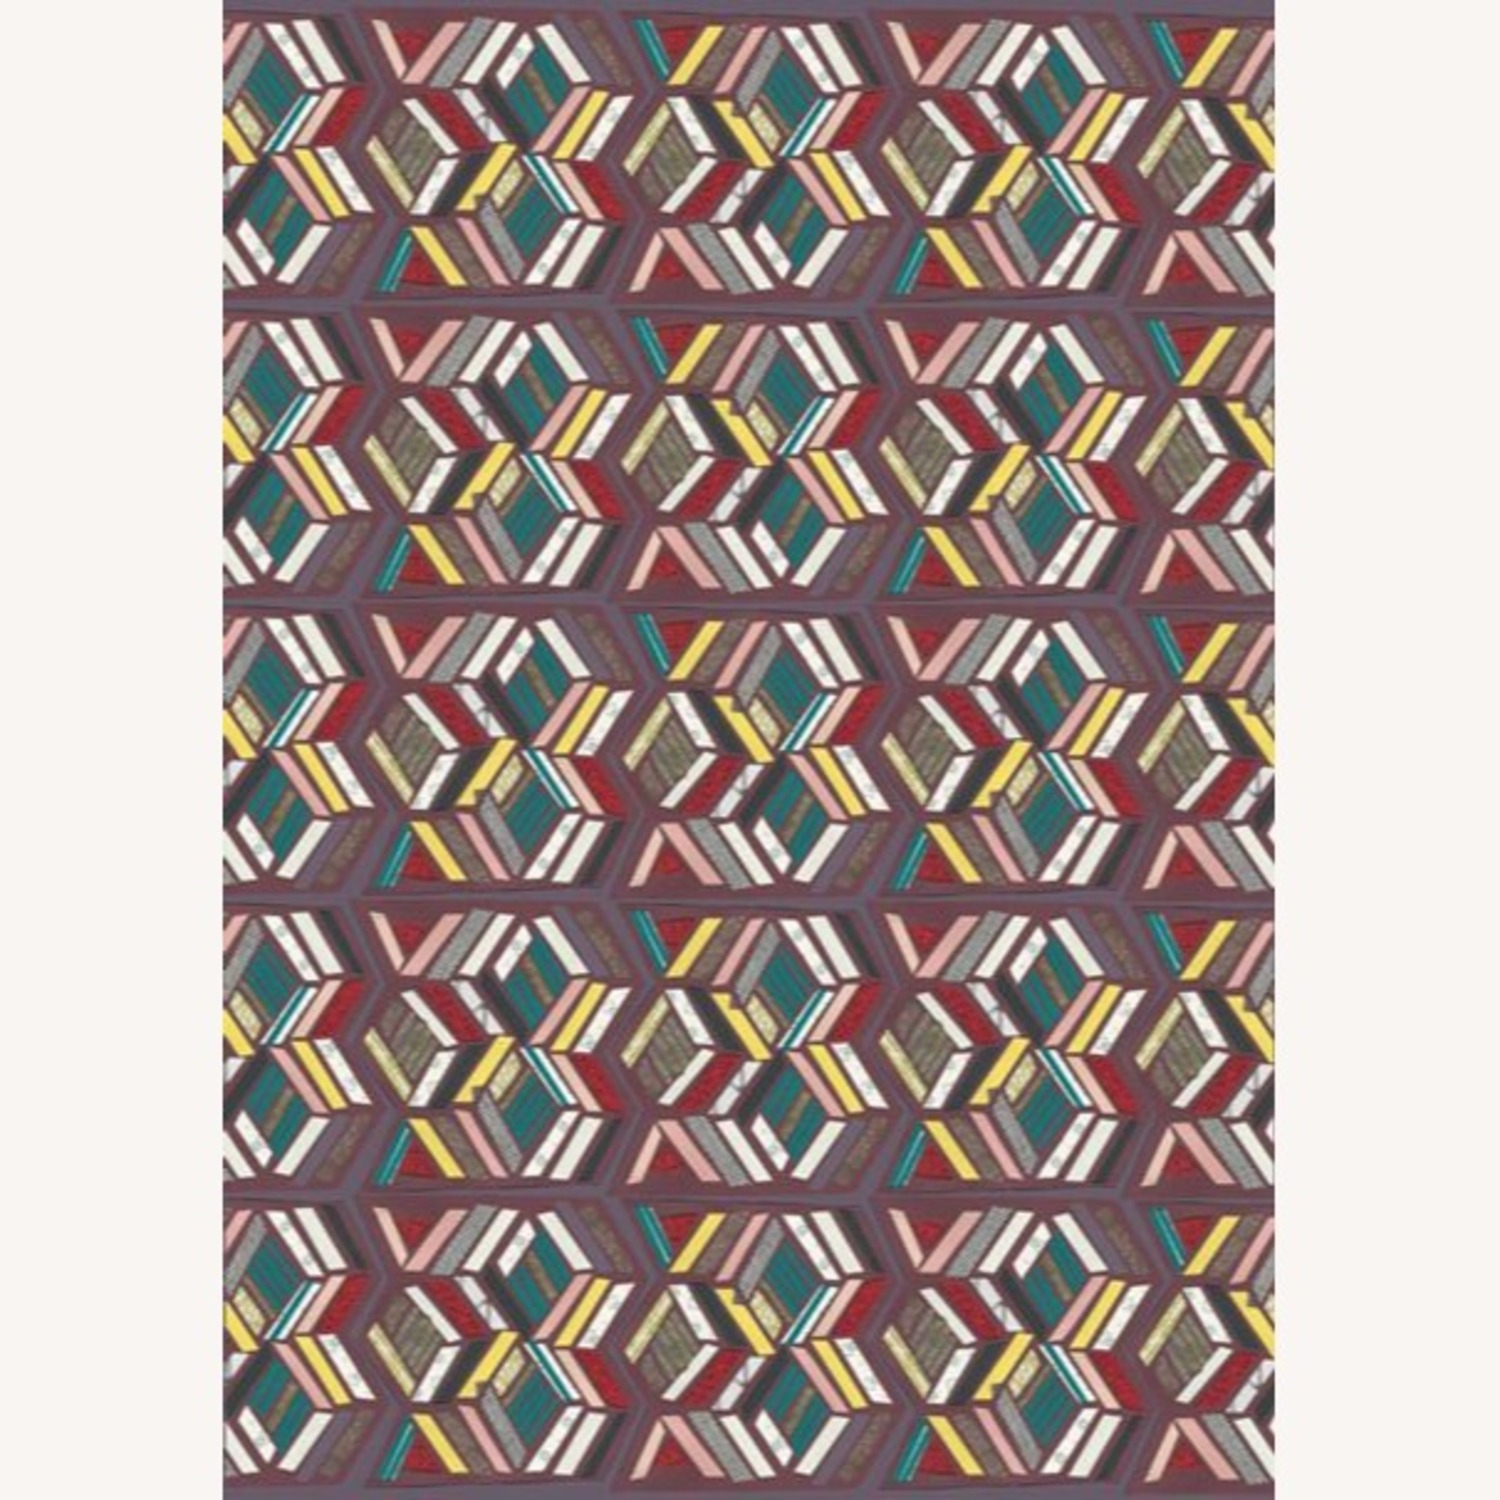 Domestic Construction Patterned Floor Mats (2) - image-4